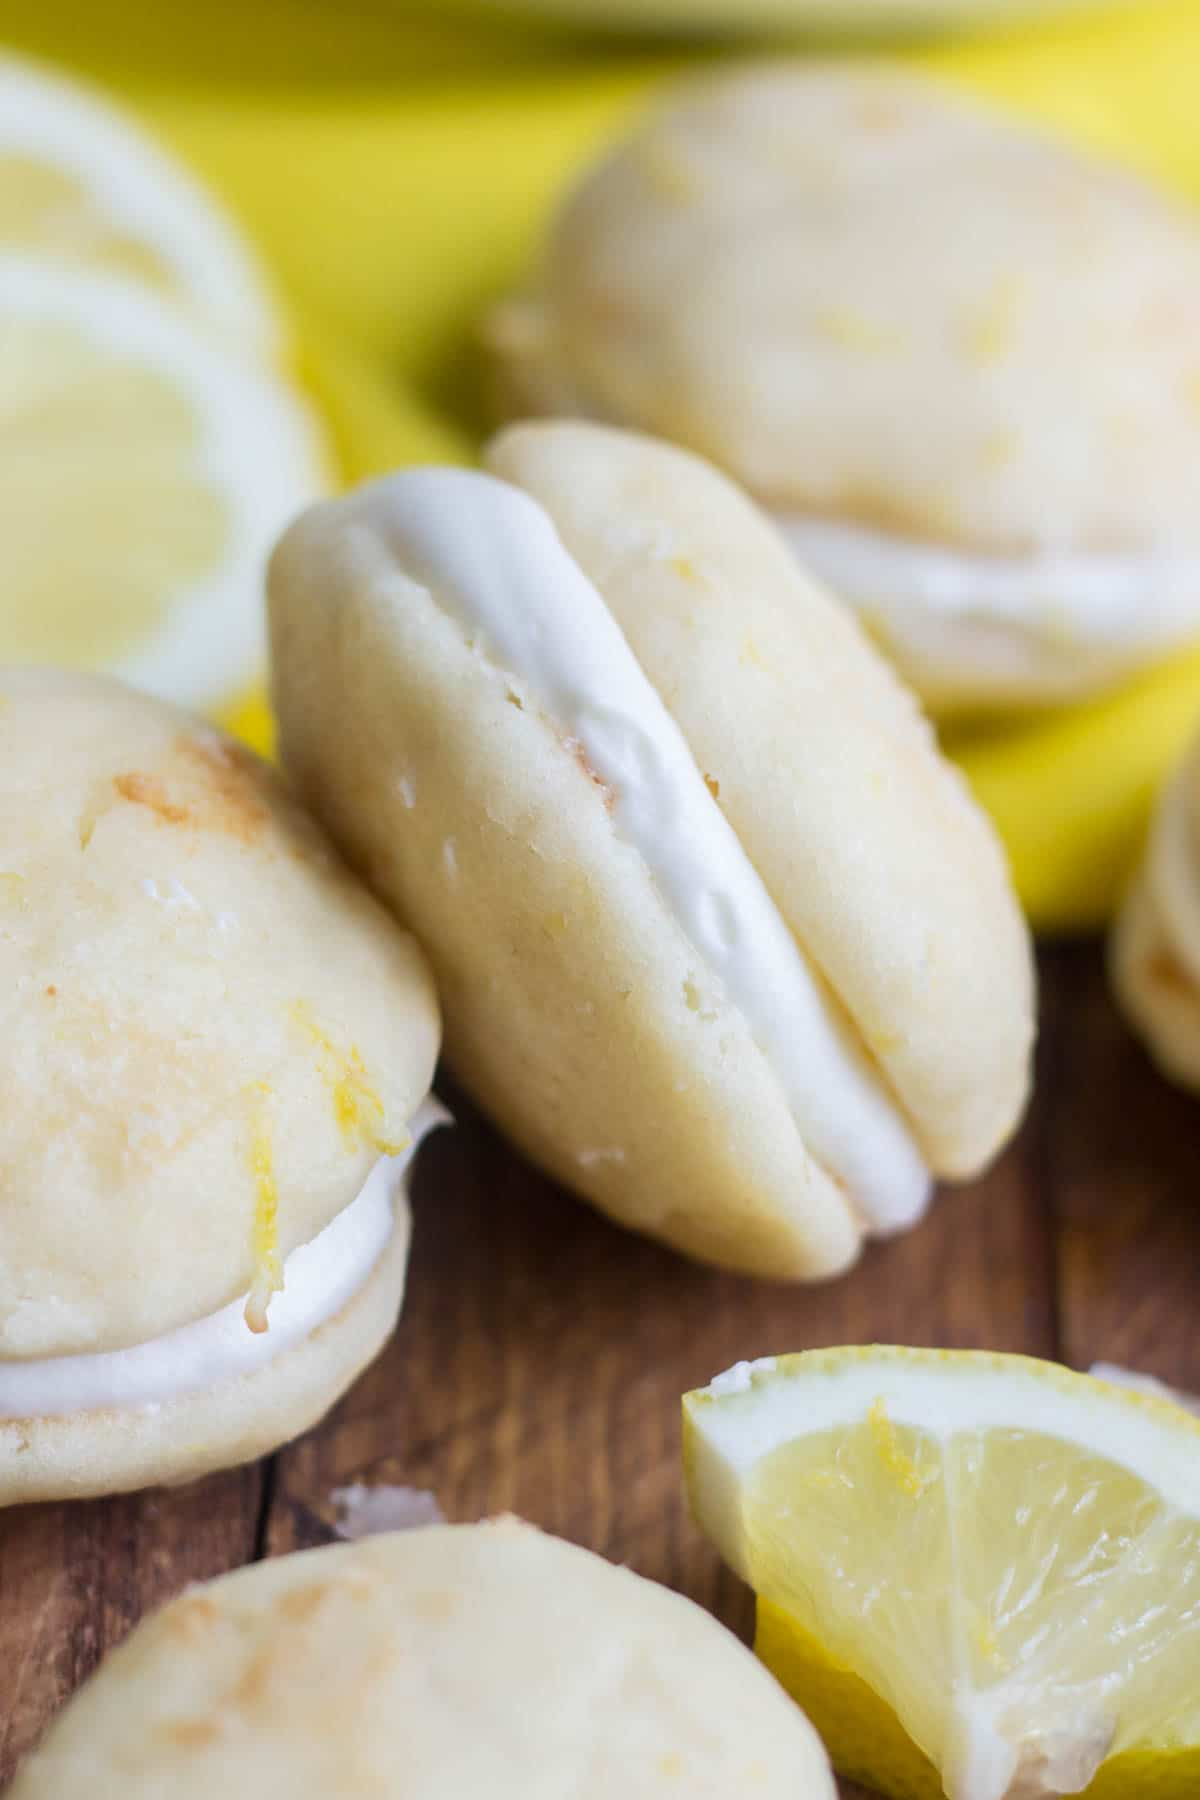 Sweet and tangy, these lemon whoopie pies are a cloud-like dessert you won't want to miss this spring. True to a whoopie pie, these are light and fluffy cake-like cookies surrounded by sweet cream cheese frosting. Perfect for spring celebrations!